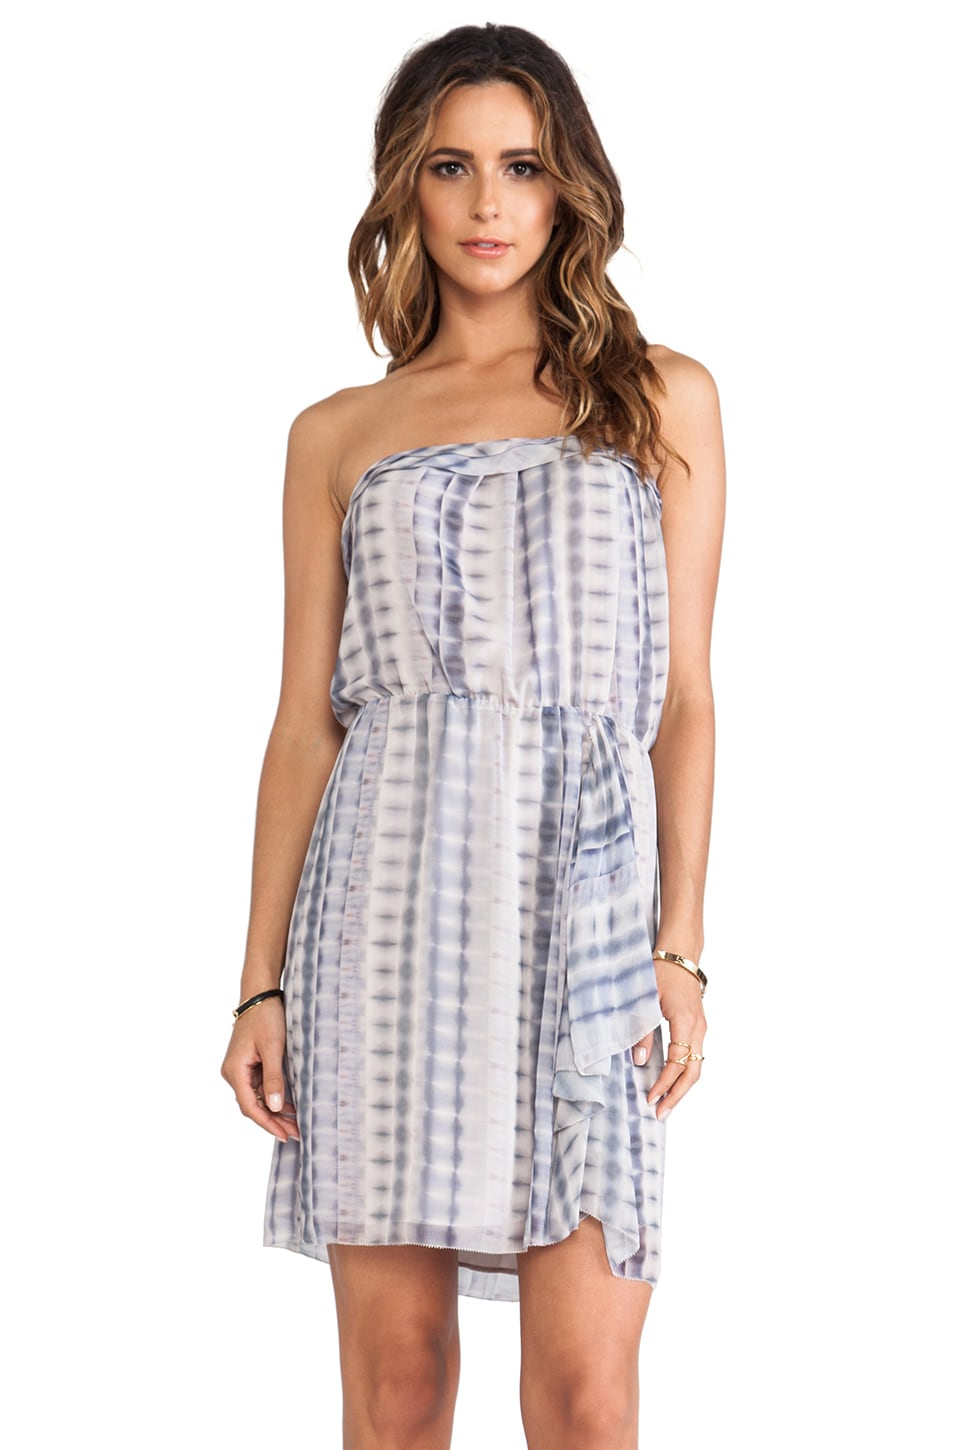 LA Made Strapless Ruffled Dress in Batik Print